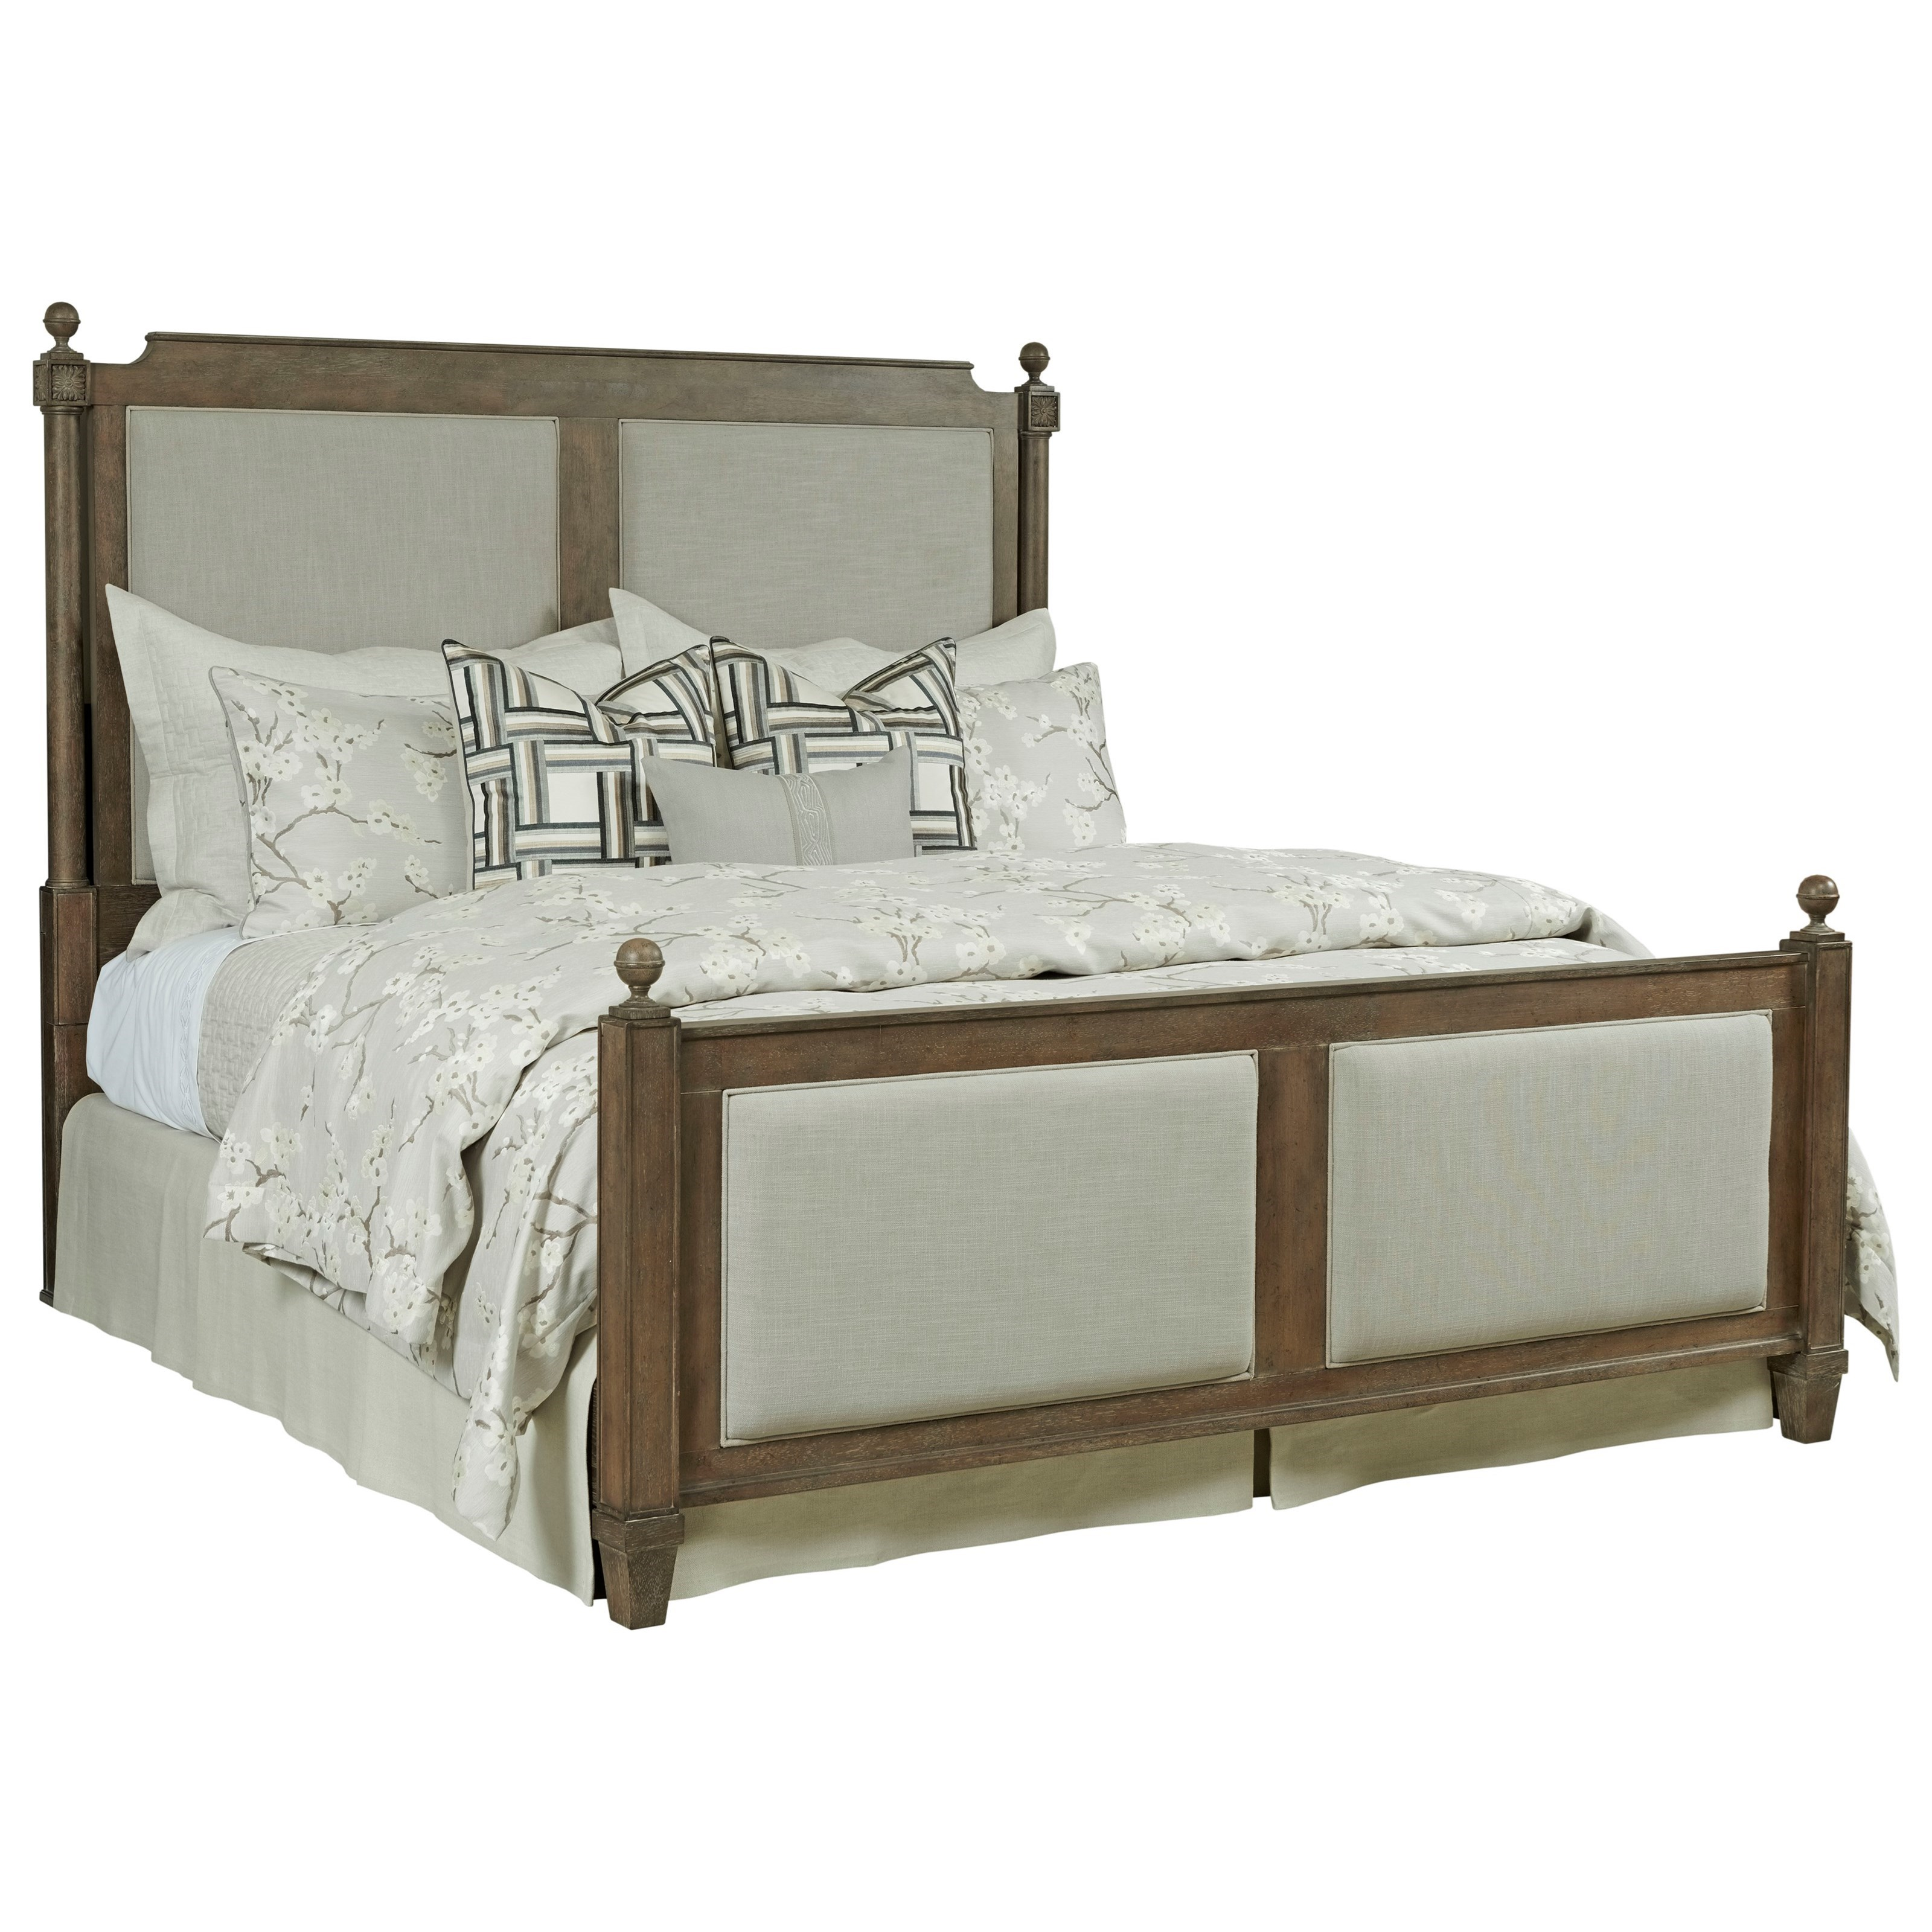 Anson Upholstered King Bed by American Drew at Alison Craig Home Furnishings